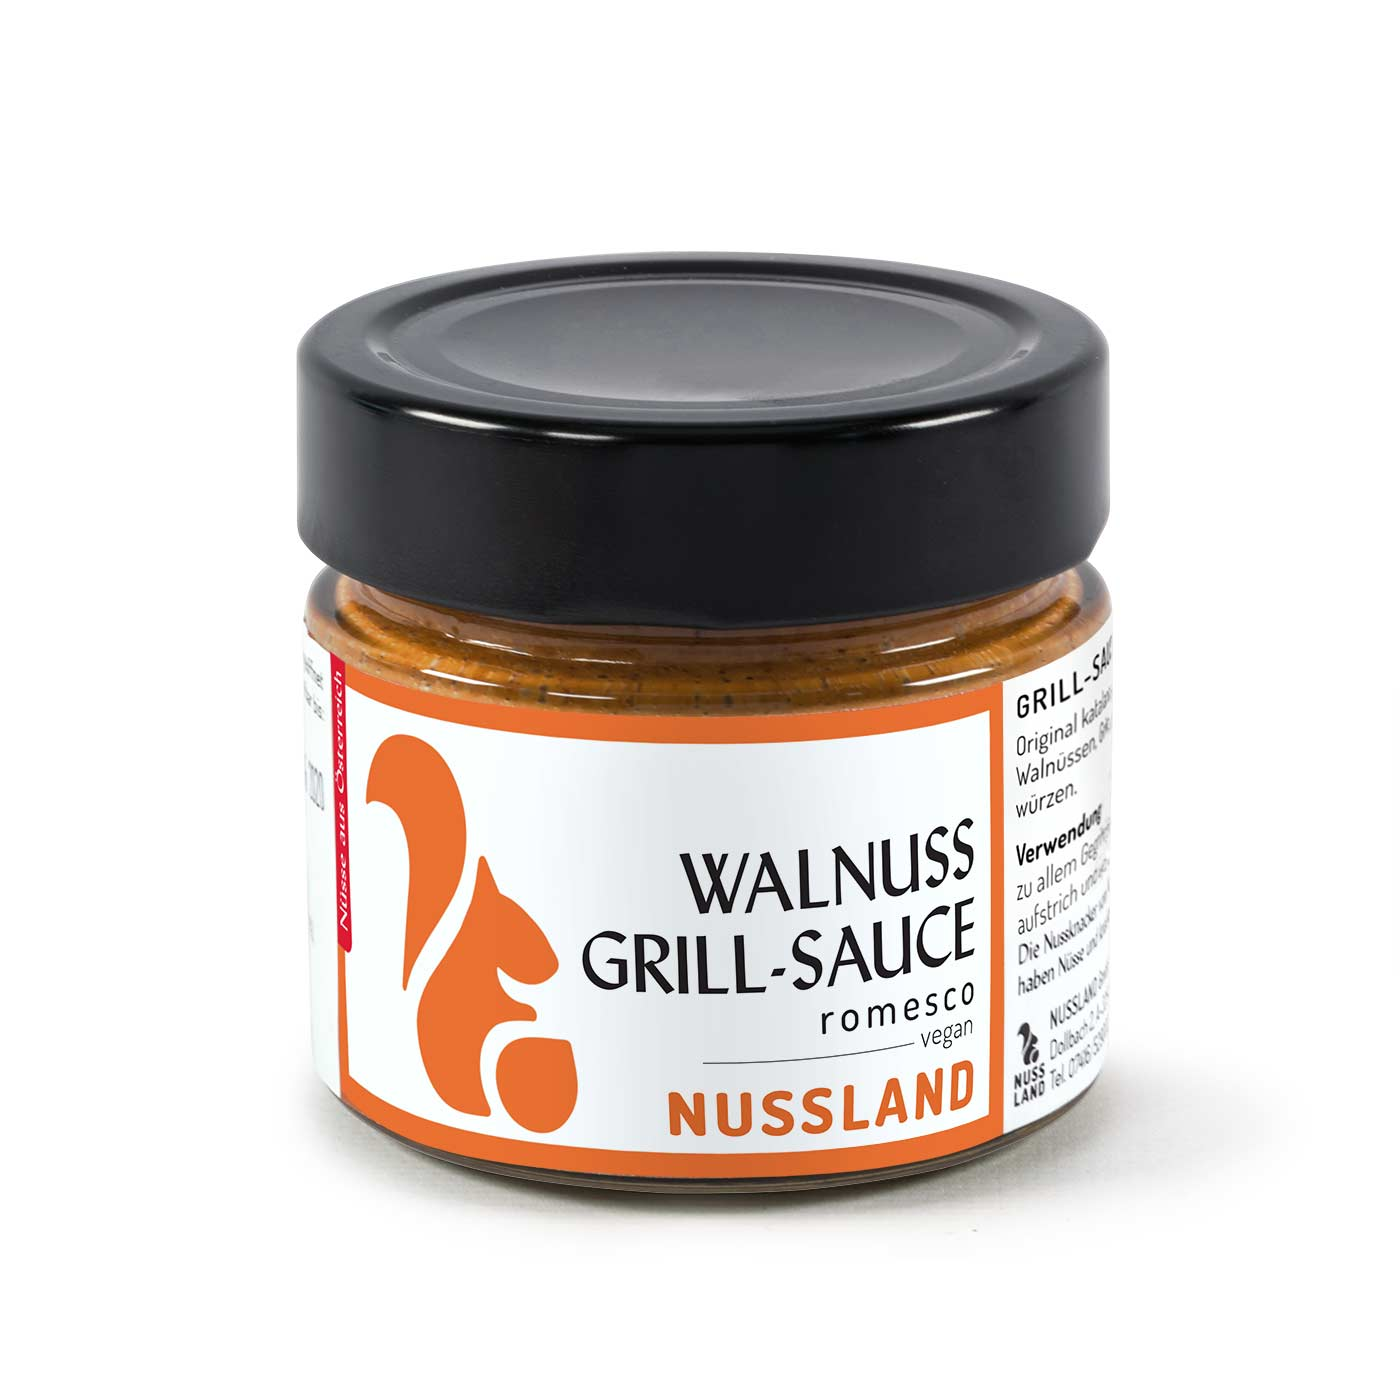 Walnuss Grill-Sauce 'Romesco'